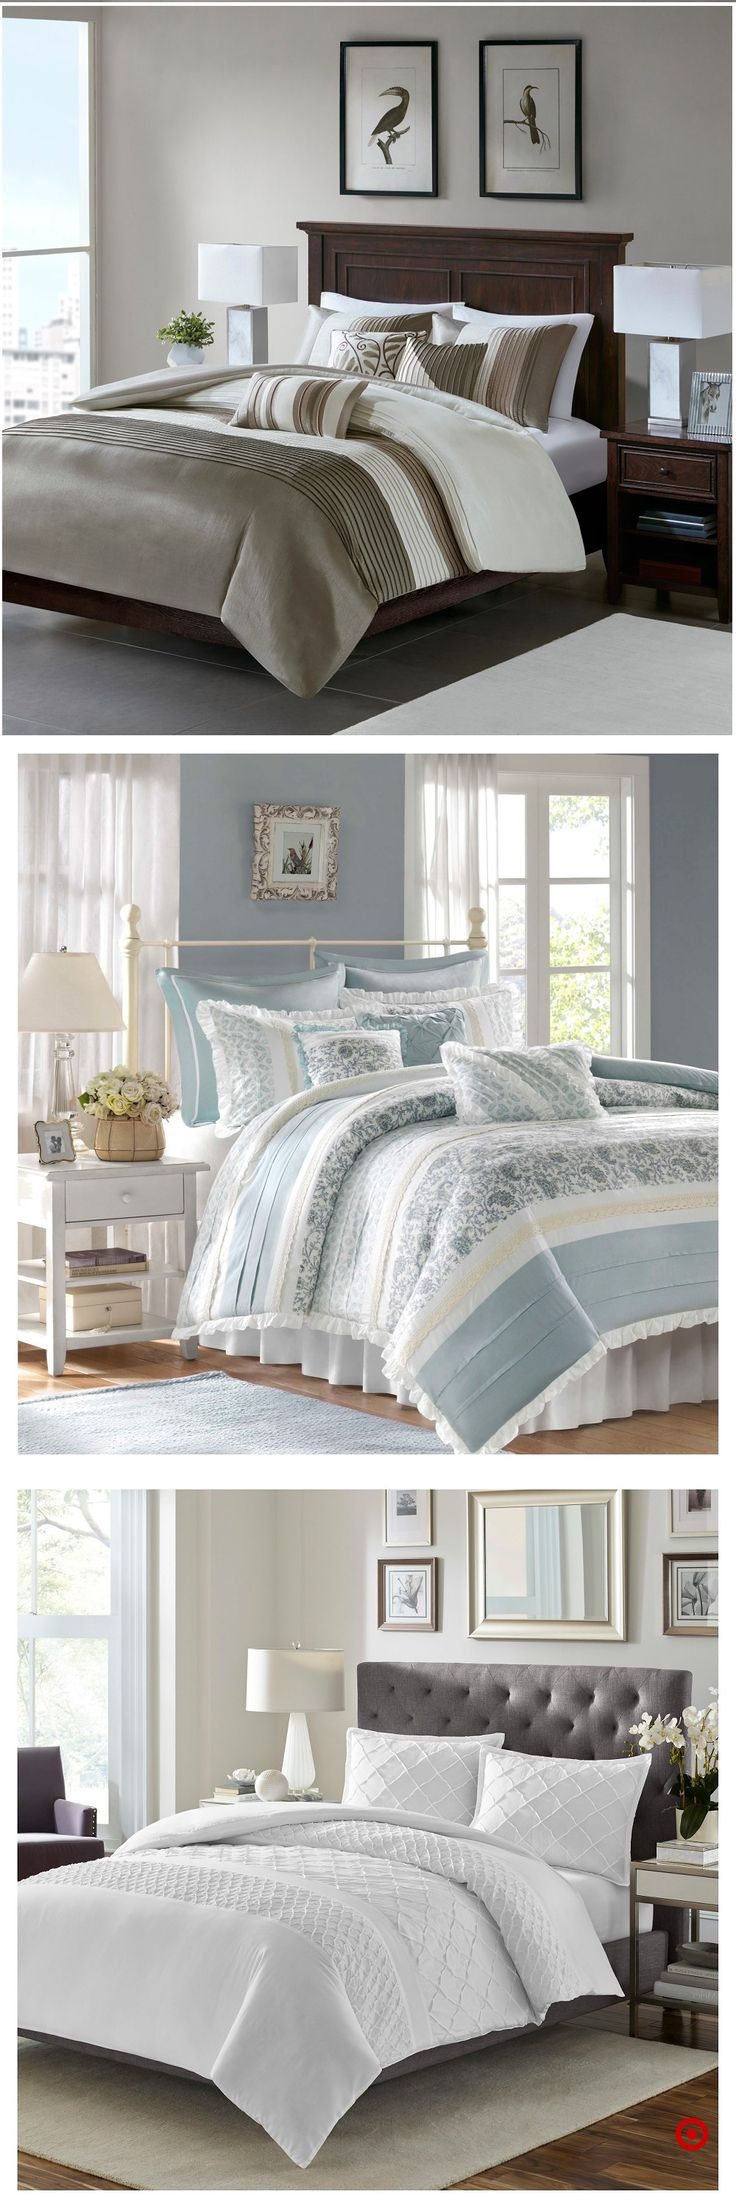 Shop Target for duvet cover sets you will love at great low prices. Free shipping on orders of $35+ or free same-day pick-up in store.